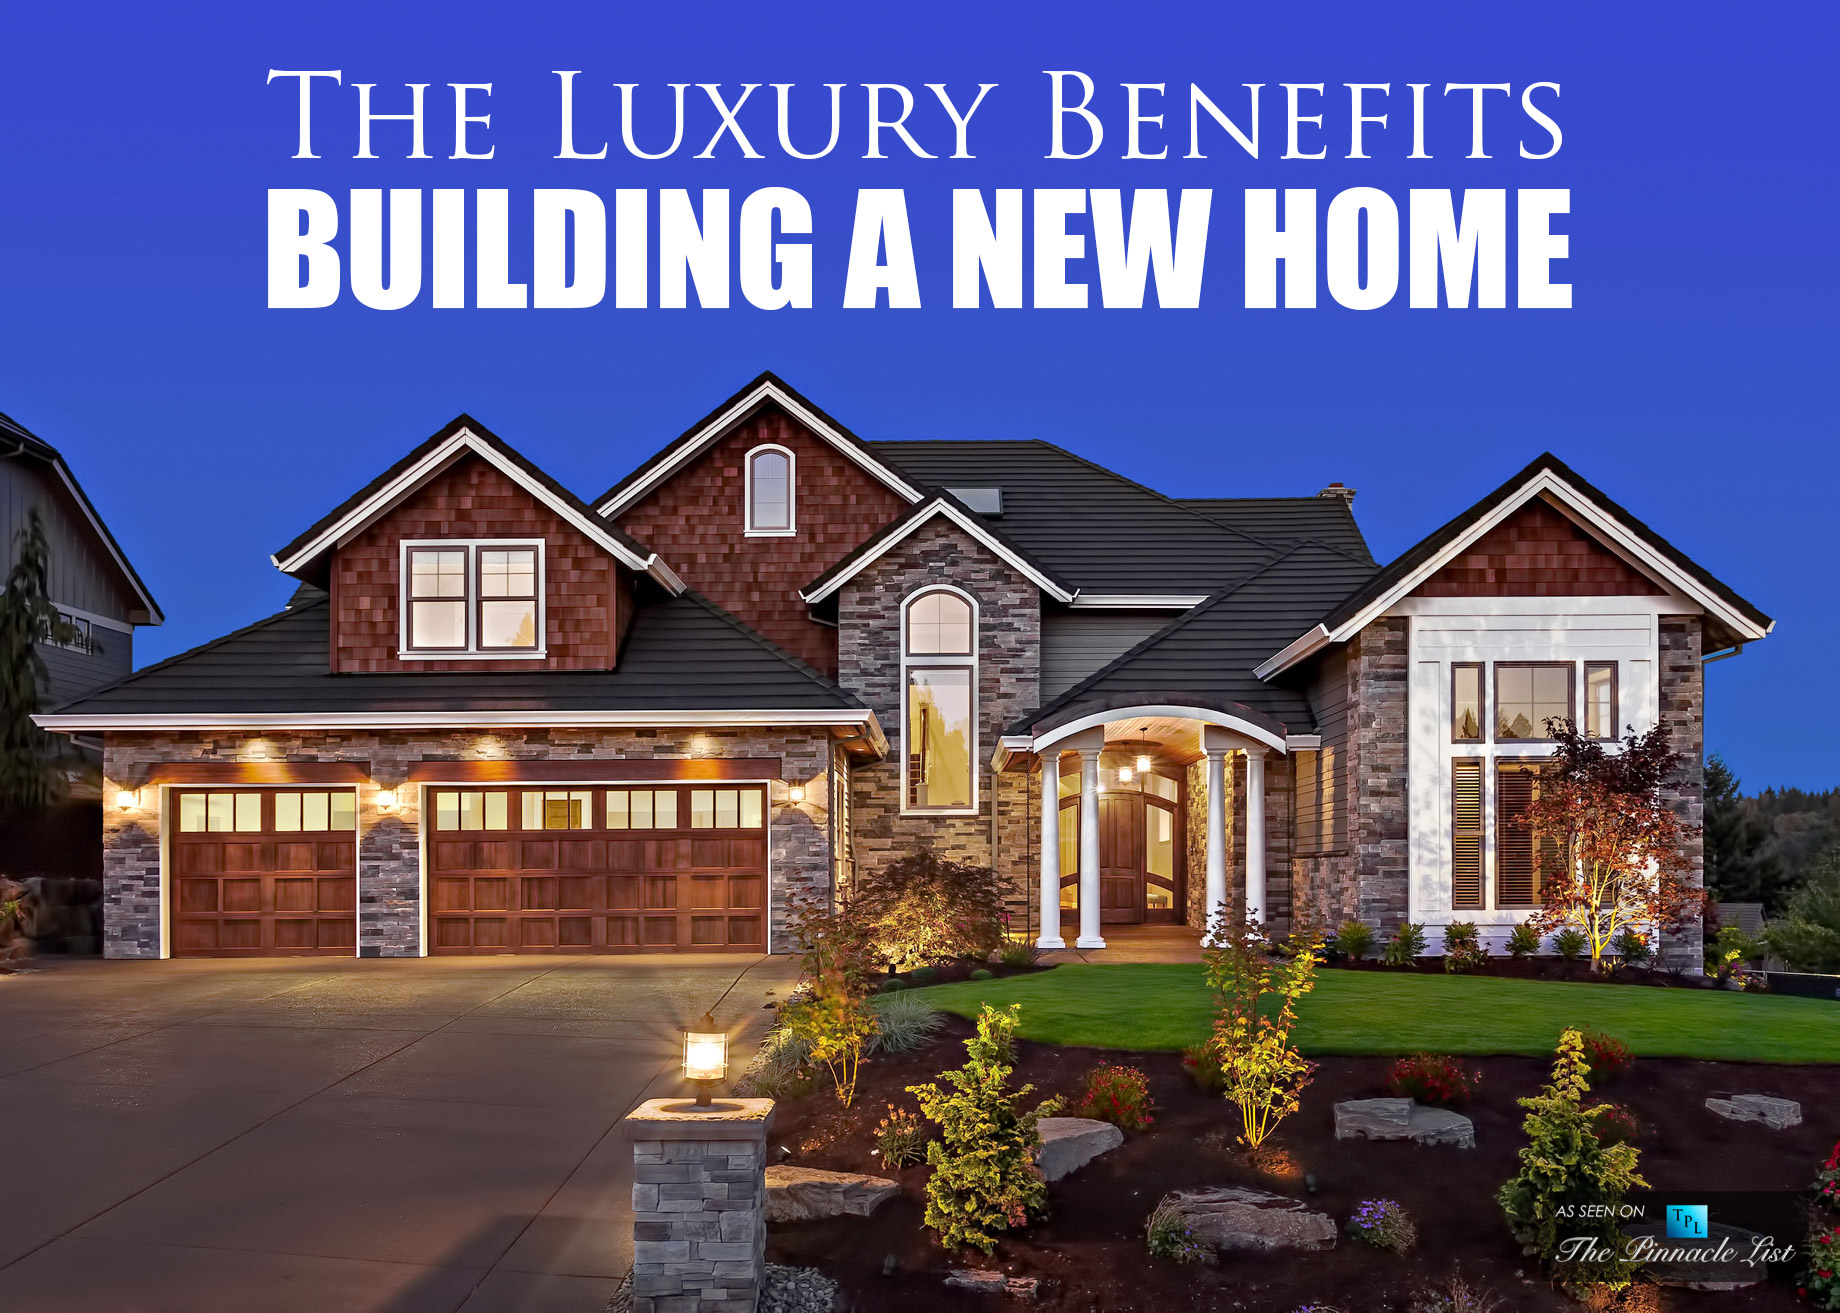 The Luxury Benefits of Building a New Home